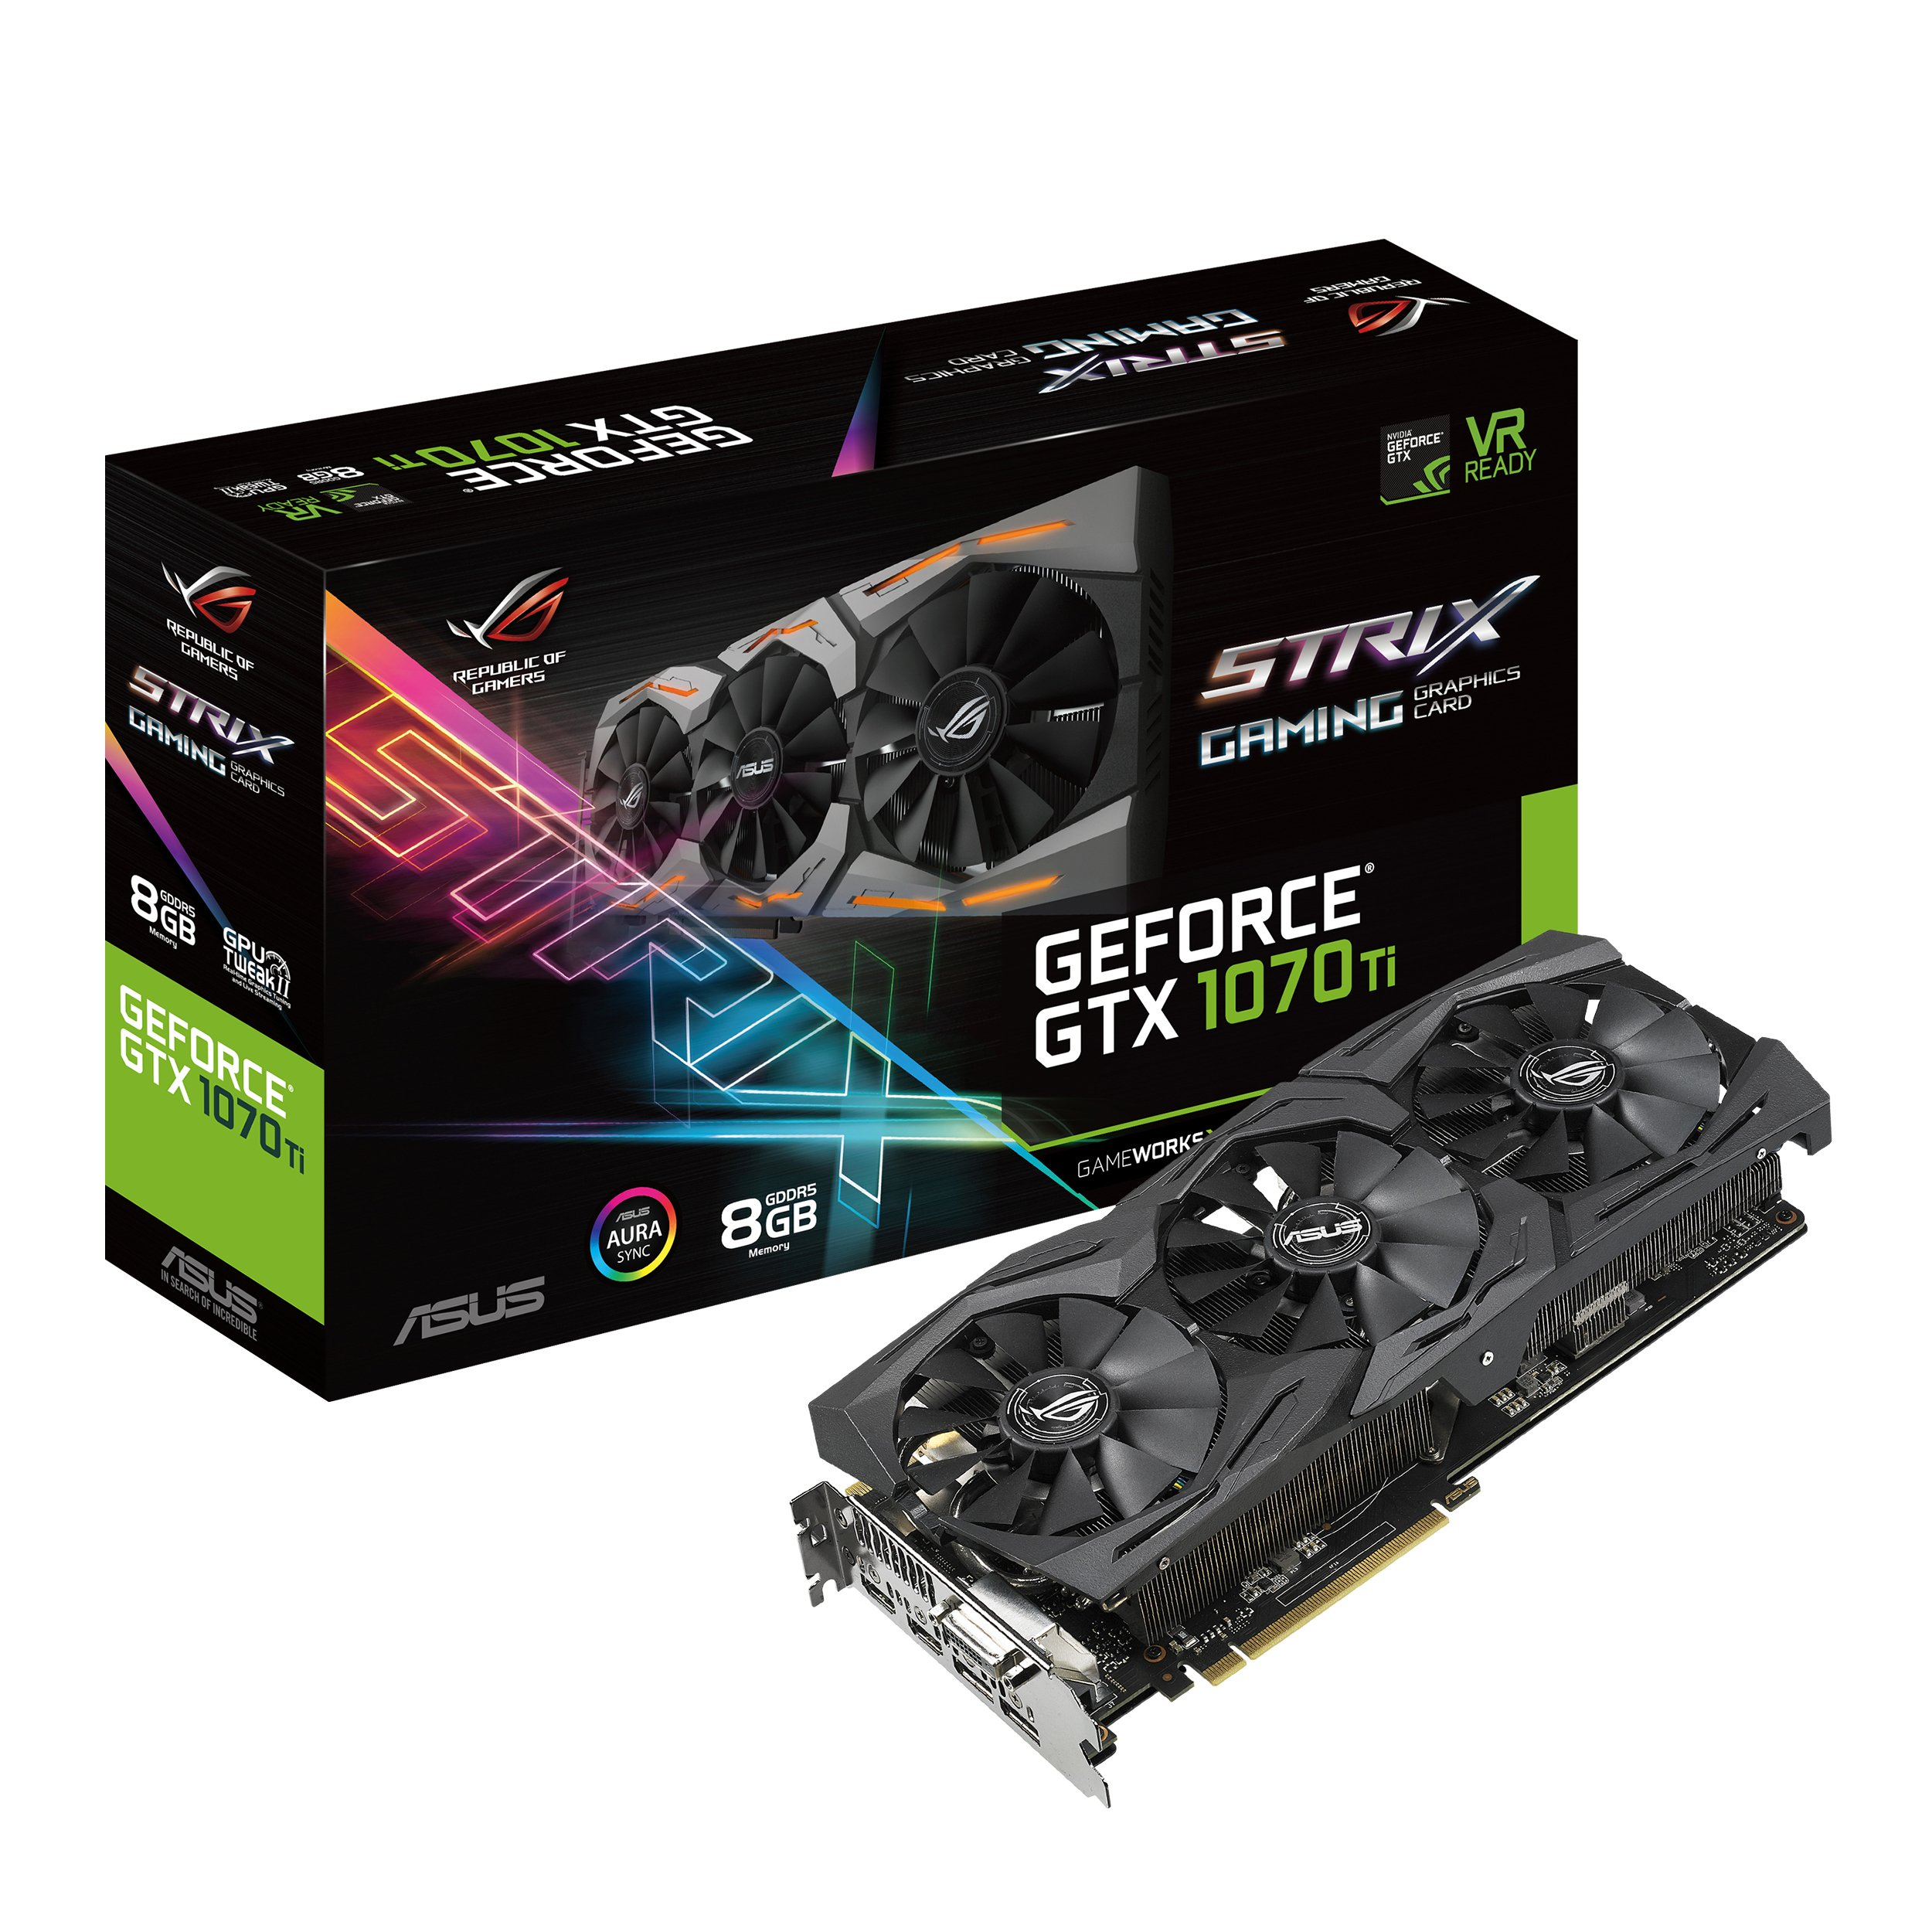 ASUS ROG Strix GeForce GTX 1070 Ti 8GB GDDR5 VR Ready DP HDMI DVI Gaming Graphics Card (ROG-STRIX-GTX1070TI-8G-GAMING)